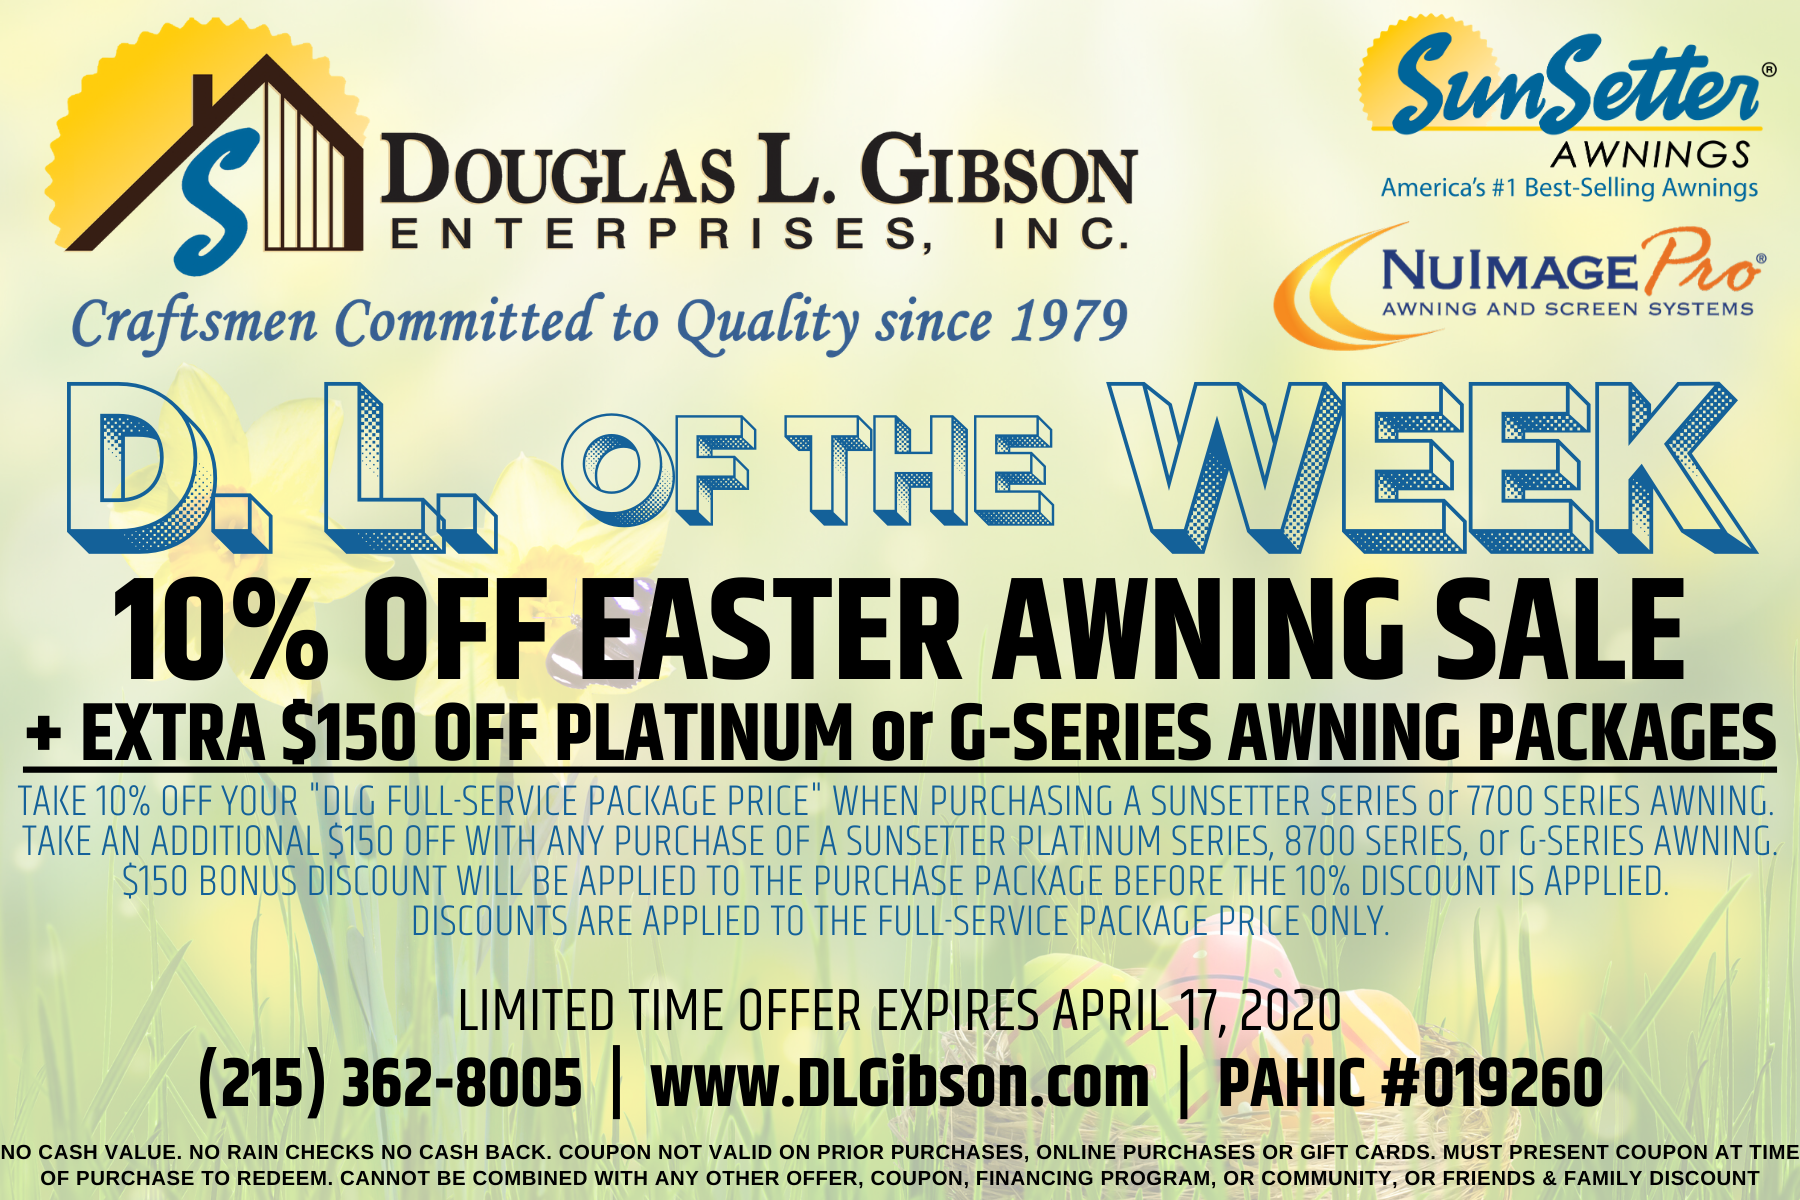 D. L. of the WEEK COUPON - SPECIAL OFFER from DOUGLAS L. GIBSON ENTERPRISES INC.